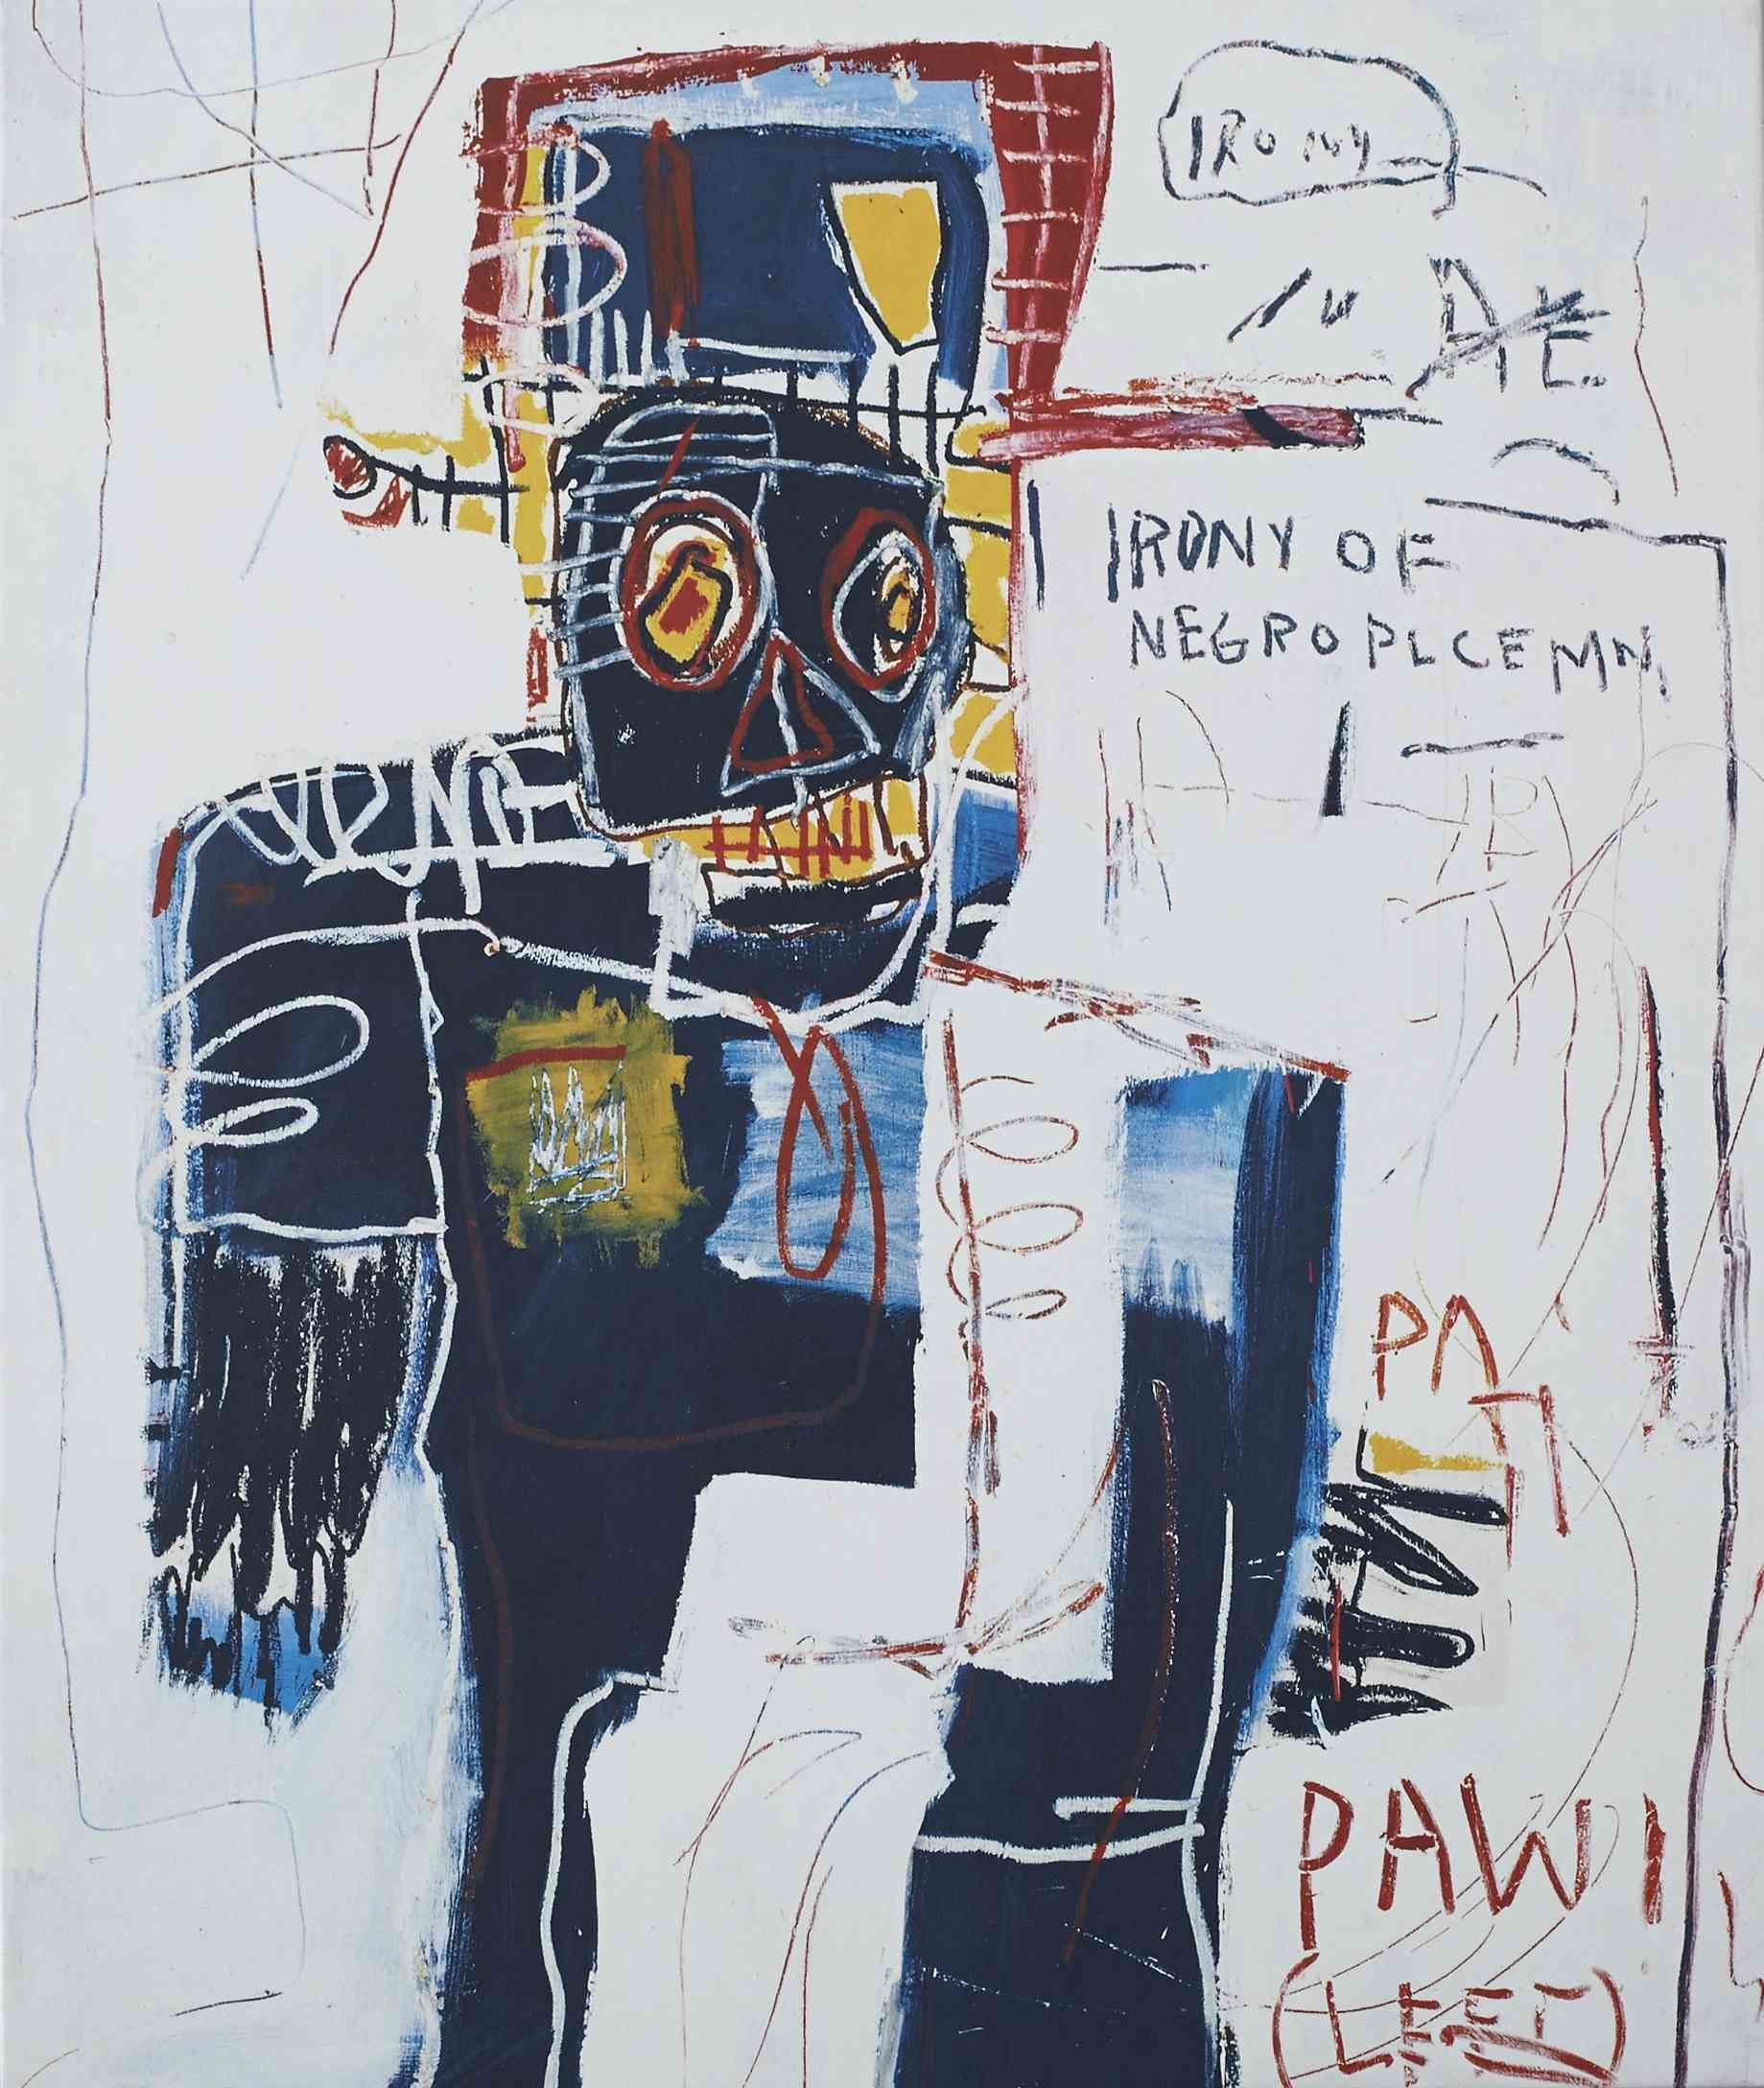 Jean Michel Basquiat Now S The Time Hardcover Overstock Com Shopping The Best Deals On Artists Jean Michel Basquiat Outsider Art Arte